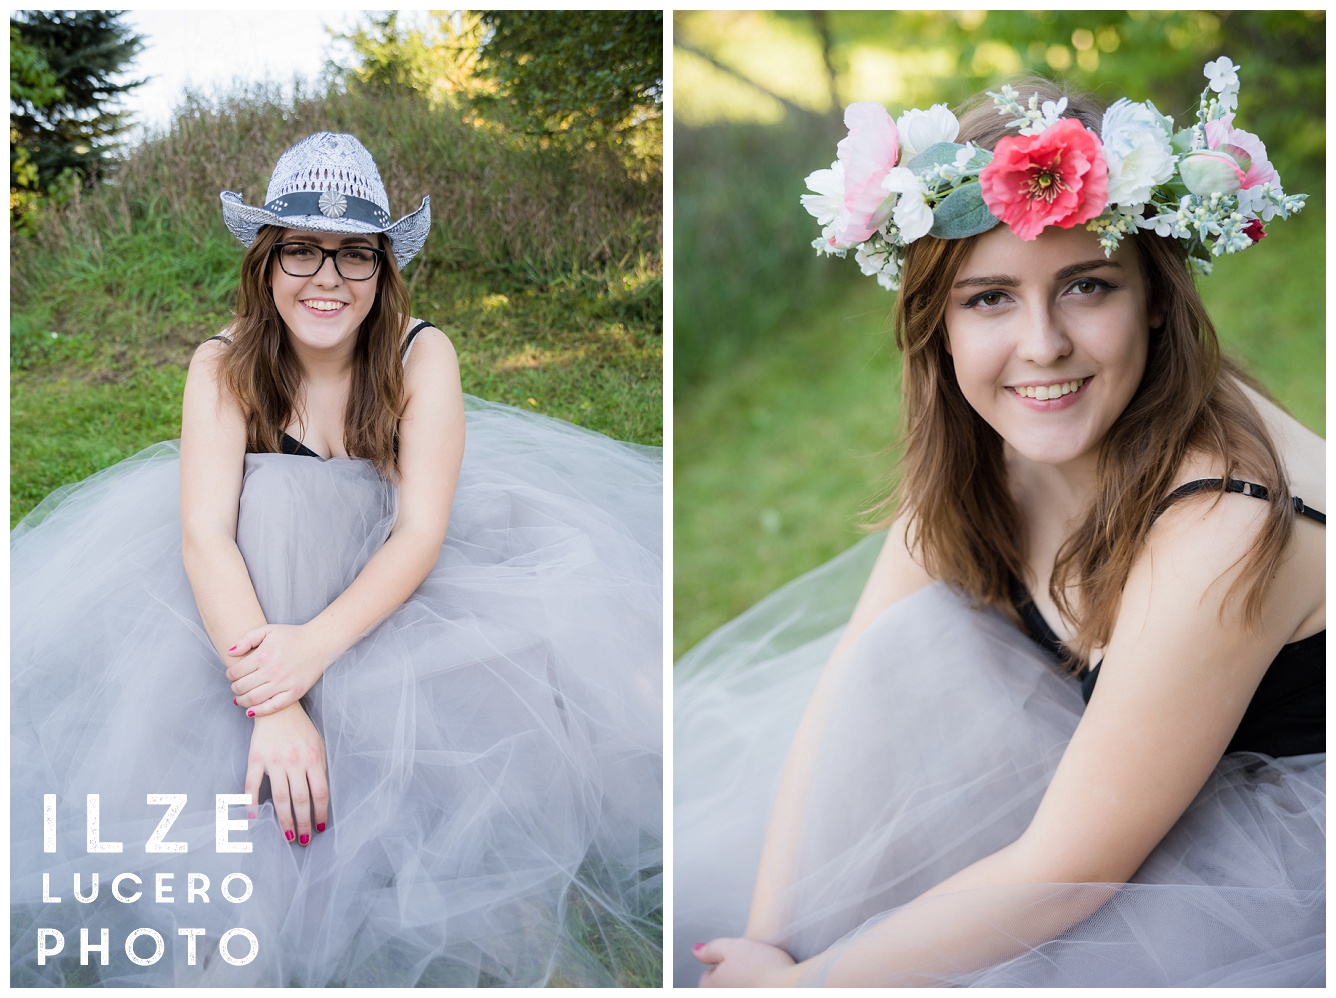 Inspirational flower crown and tulle skirt photo shoot